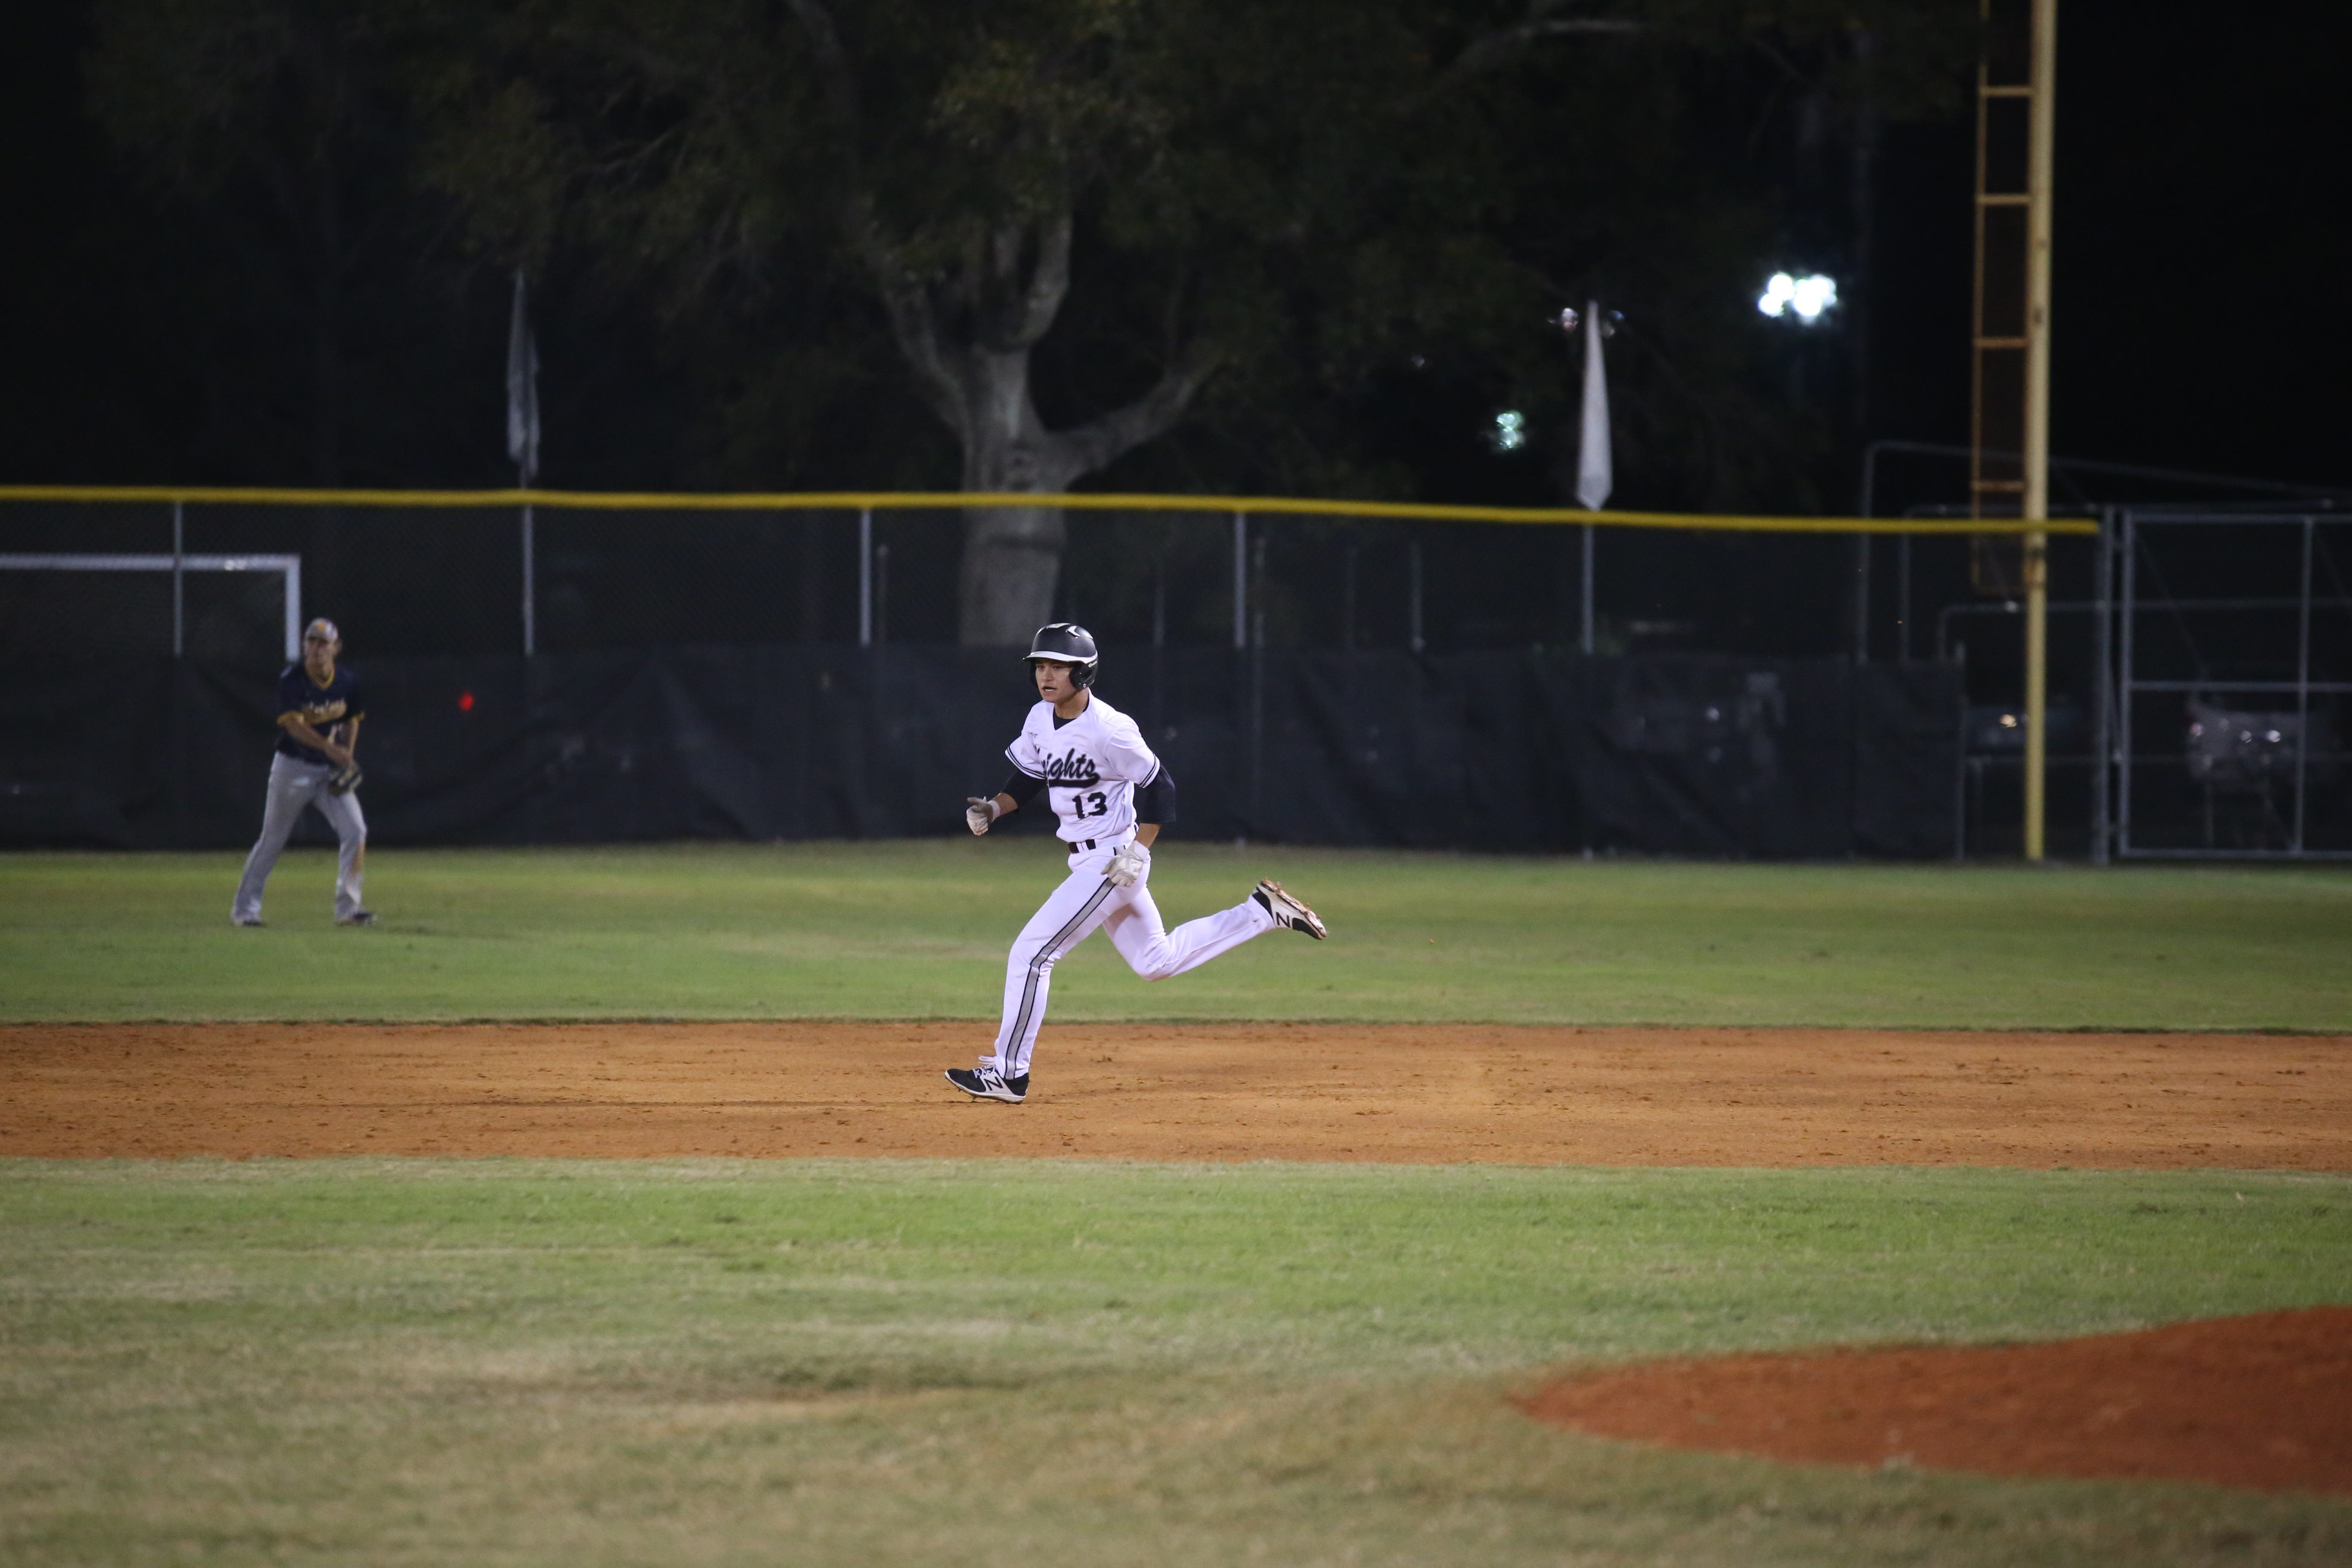 Outfielder Aaron Scott ('17) runs to second during the Knights' 6-5 loss to Steinbrenner.